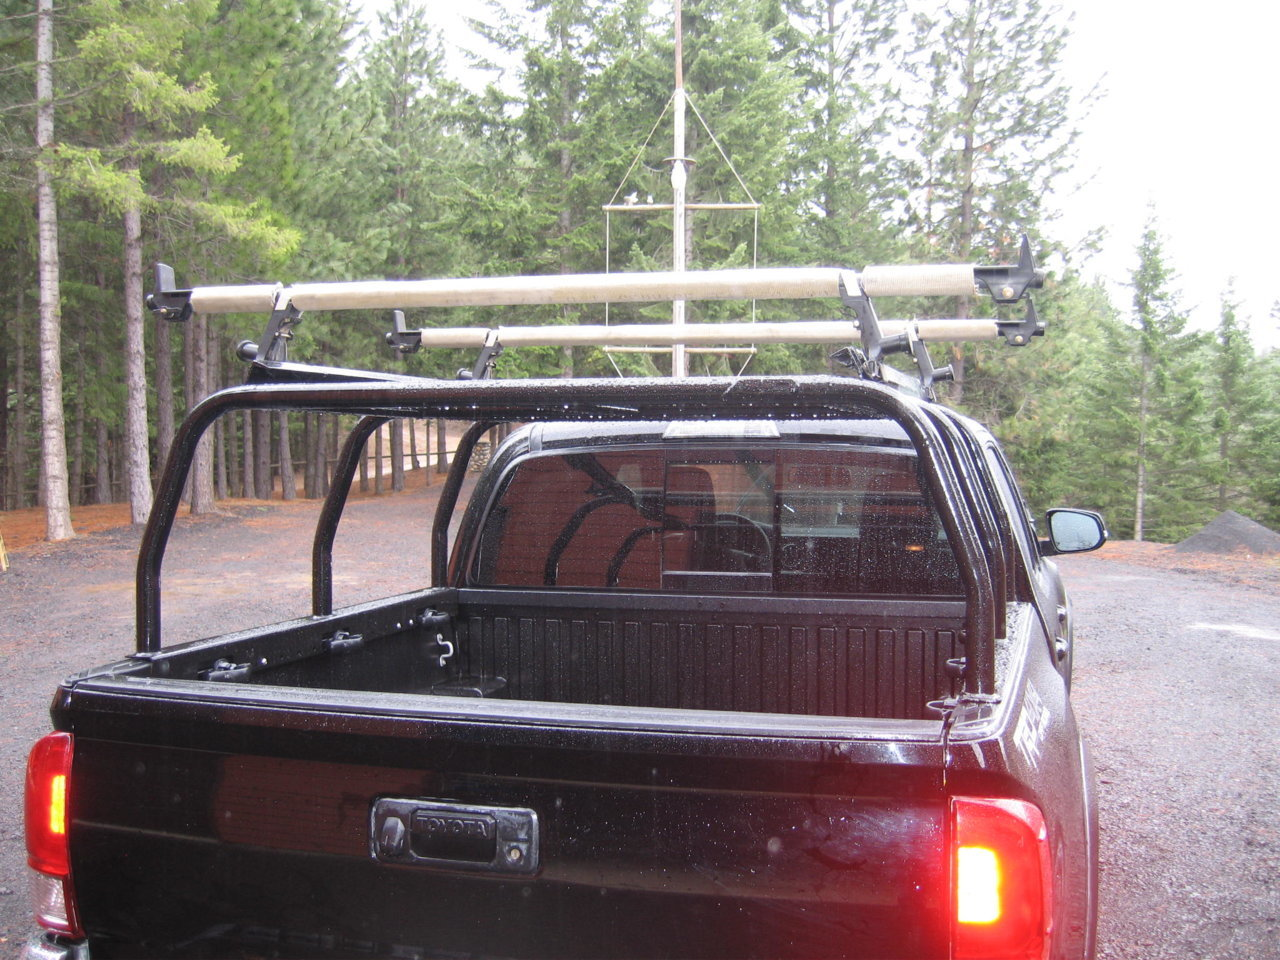 Yakima Rack on Bed Rack 1.jpg